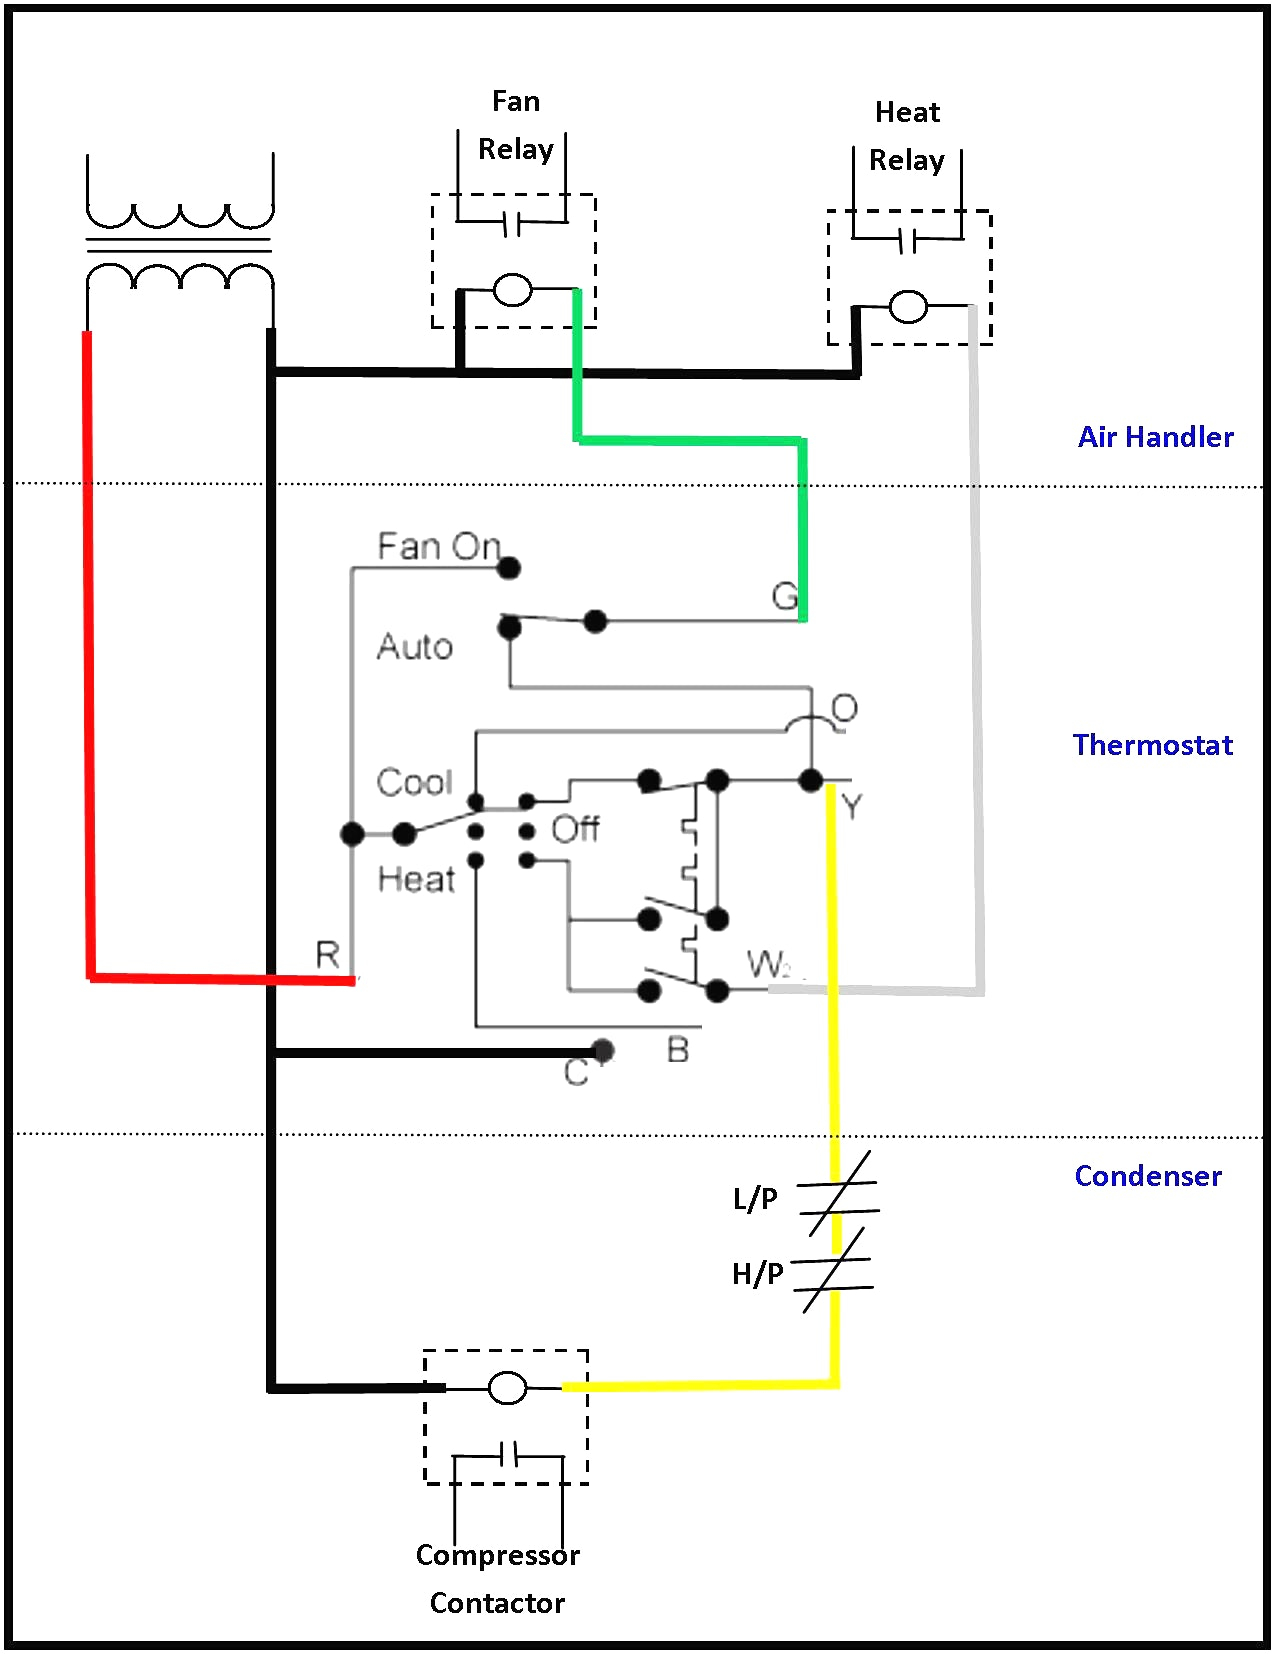 ac low voltage wiring diagram Download-Low Voltage Lighting Wiring Diagram Ac Prepossessing 7-e